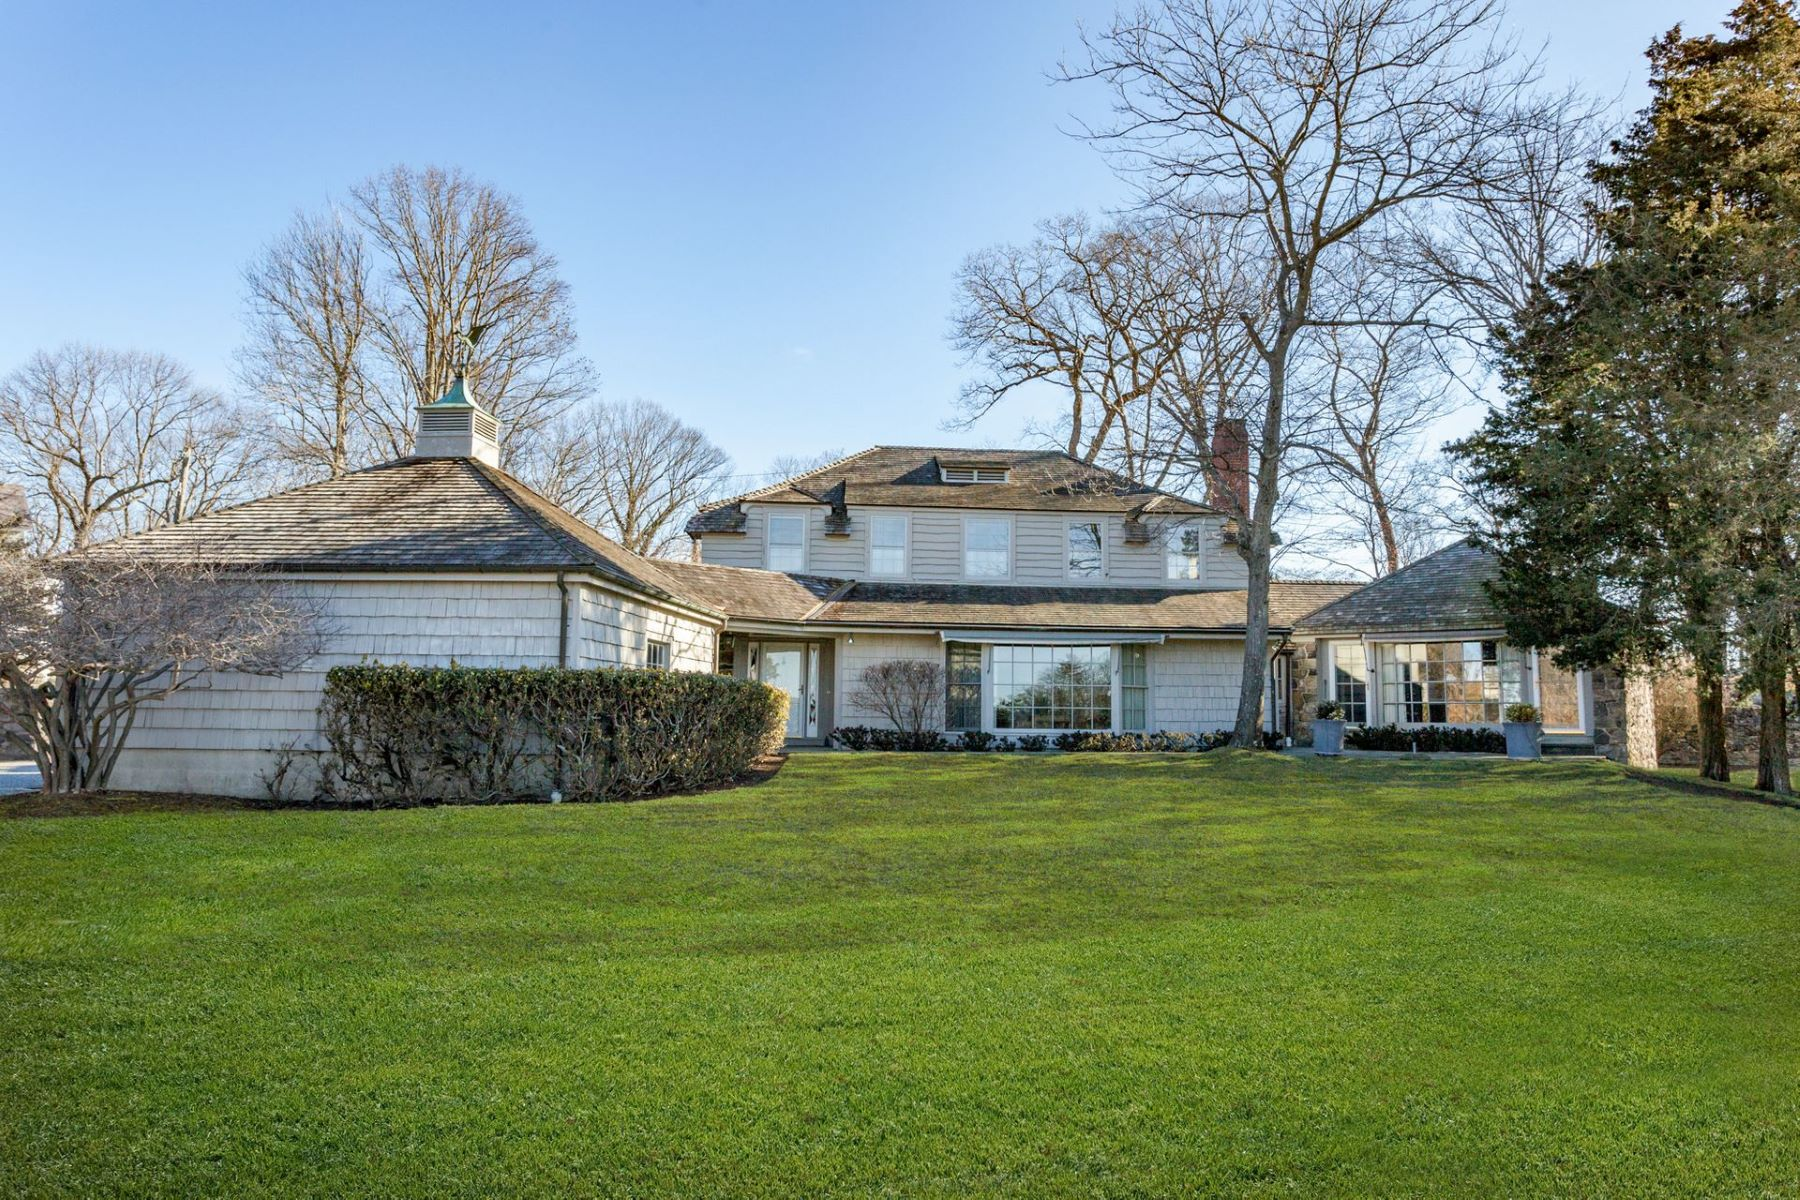 Single Family Homes for Active at 29 Tokeneke Trail Darien, Connecticut 06820 United States